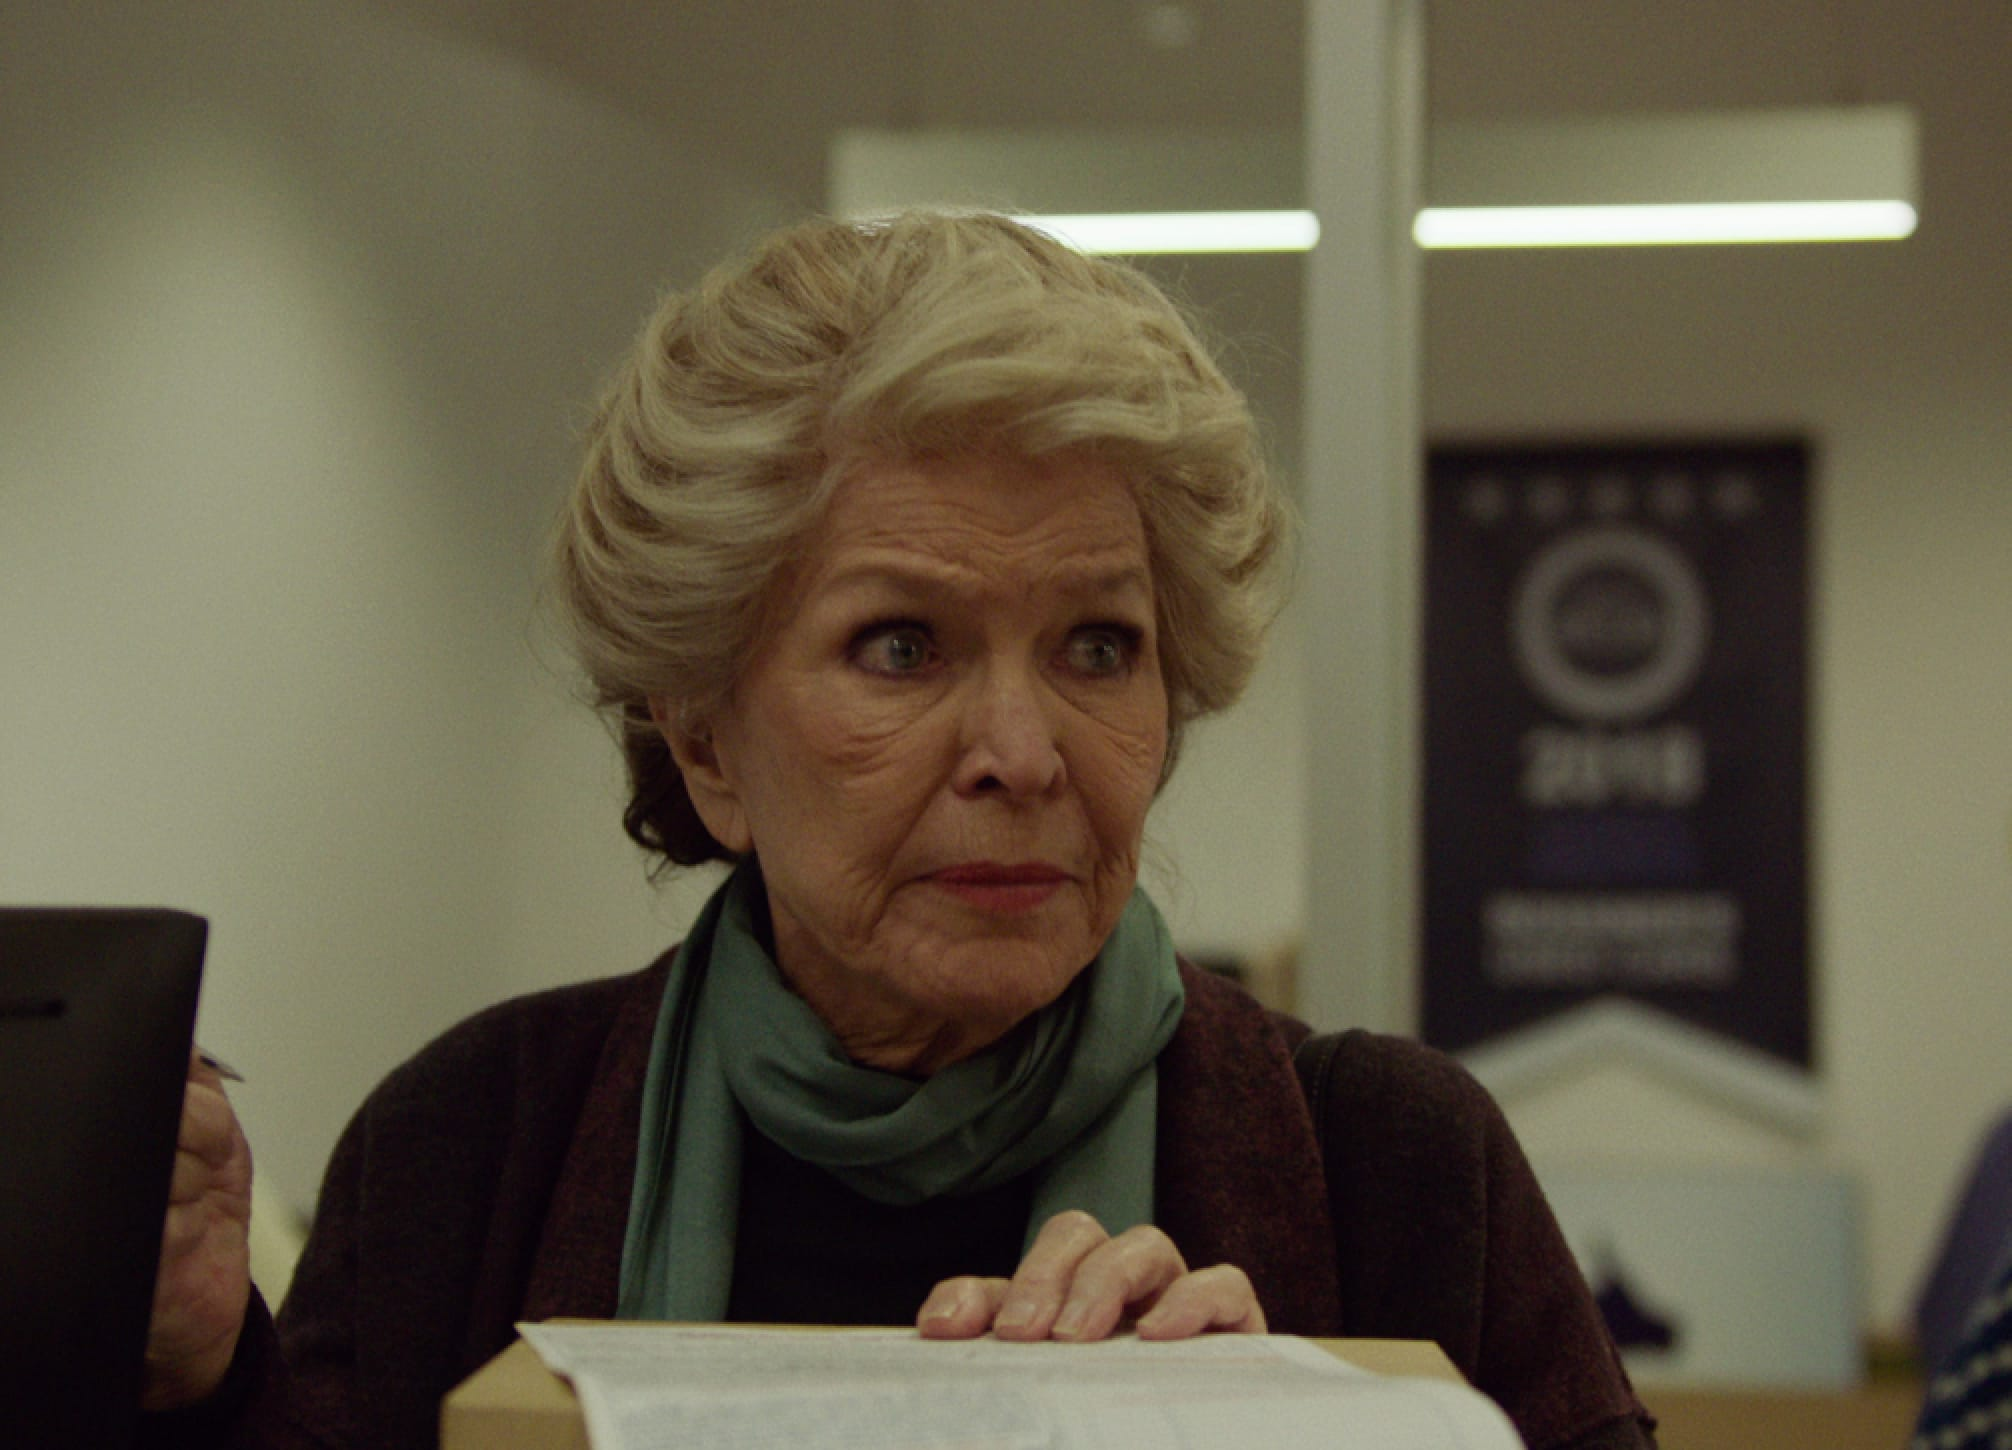 Ellen Burstyn as Elizabeth Weiss in a still from Pieces of a Woman. Her large blue eyes match the thin scarf tied around her neck, and her white hair is styled in an elegant up-do.